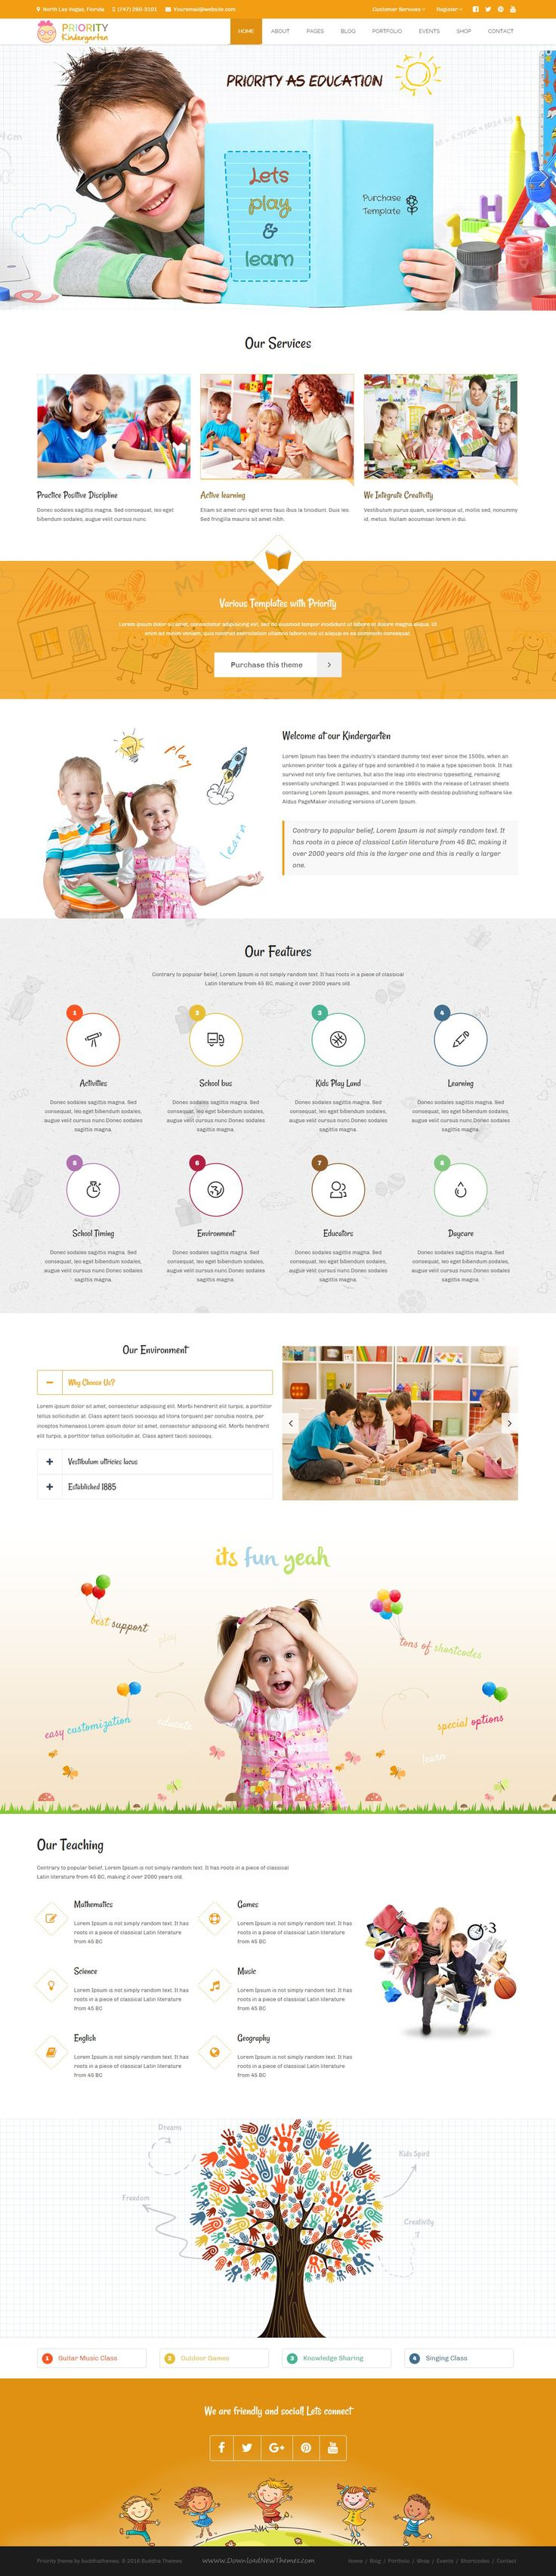 PRIORITY is well designed Mega Bundle WP Theme package for websites of all kind; Agency, Creative Corporate, All types of Business, Organization, Software, #Education, Medical, Charity, Personal Portfolio, Creative Blog, Photography and more… #Preschool #Kindergarten #website